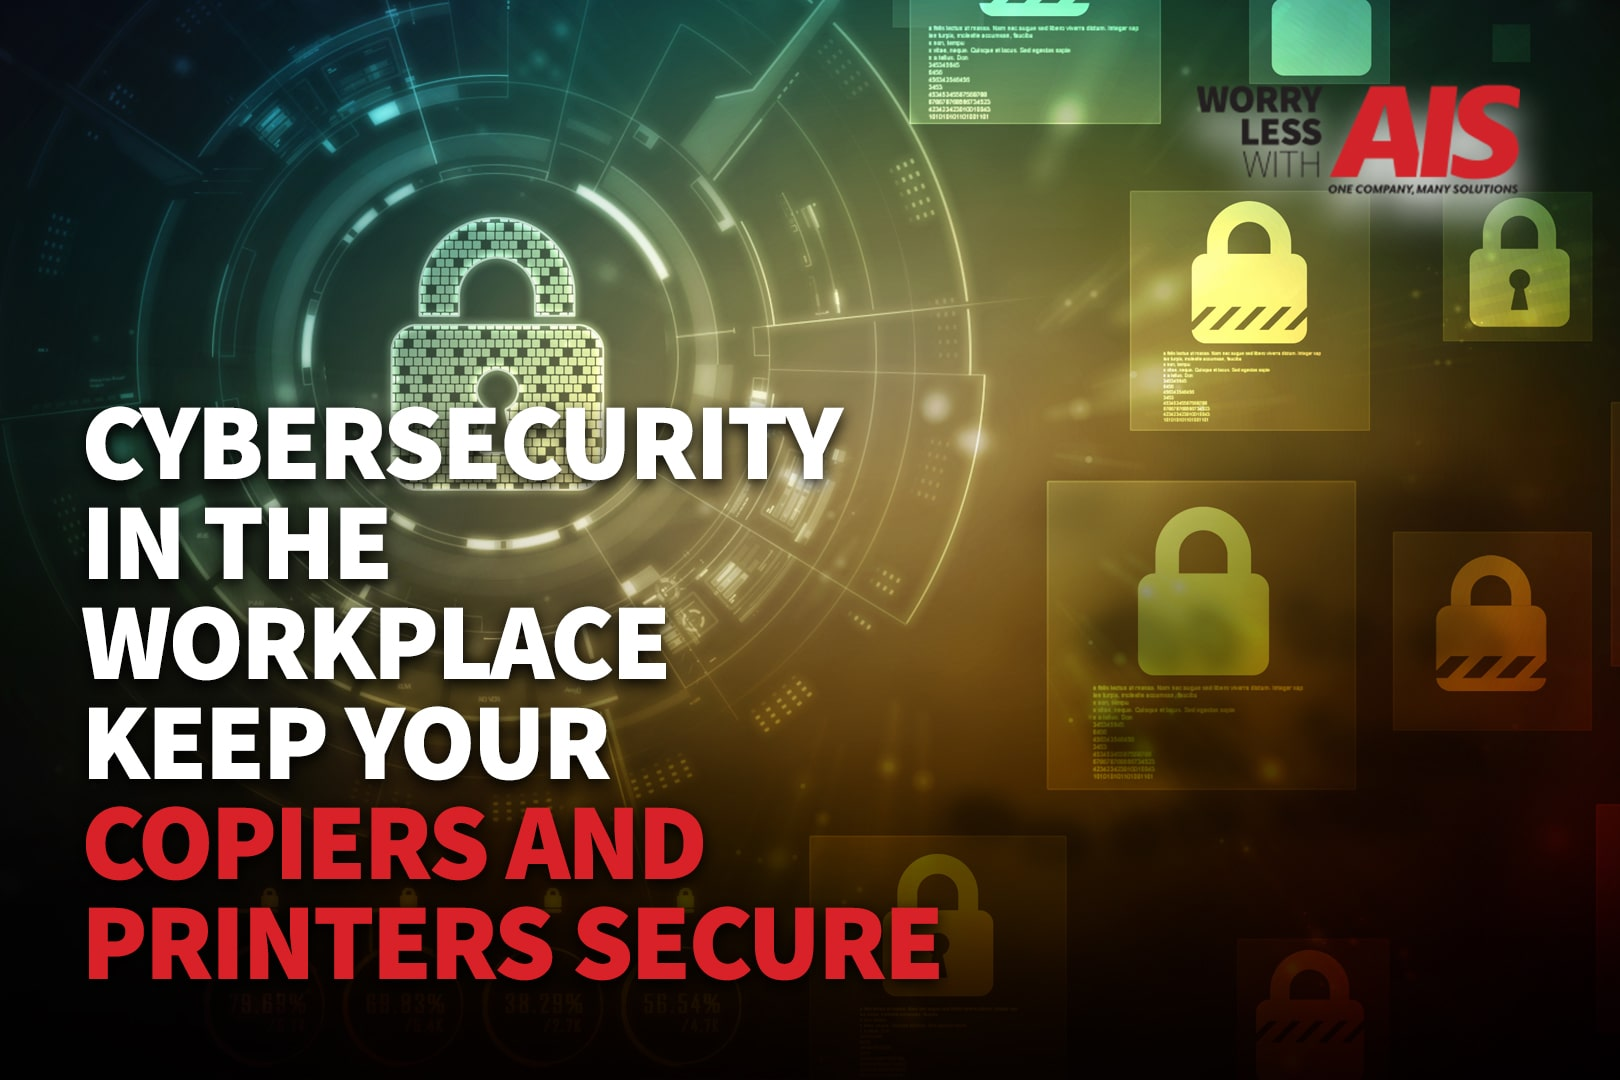 Cybersecurity And The Workplace: Keep Your Office Copiers and Printers Secure